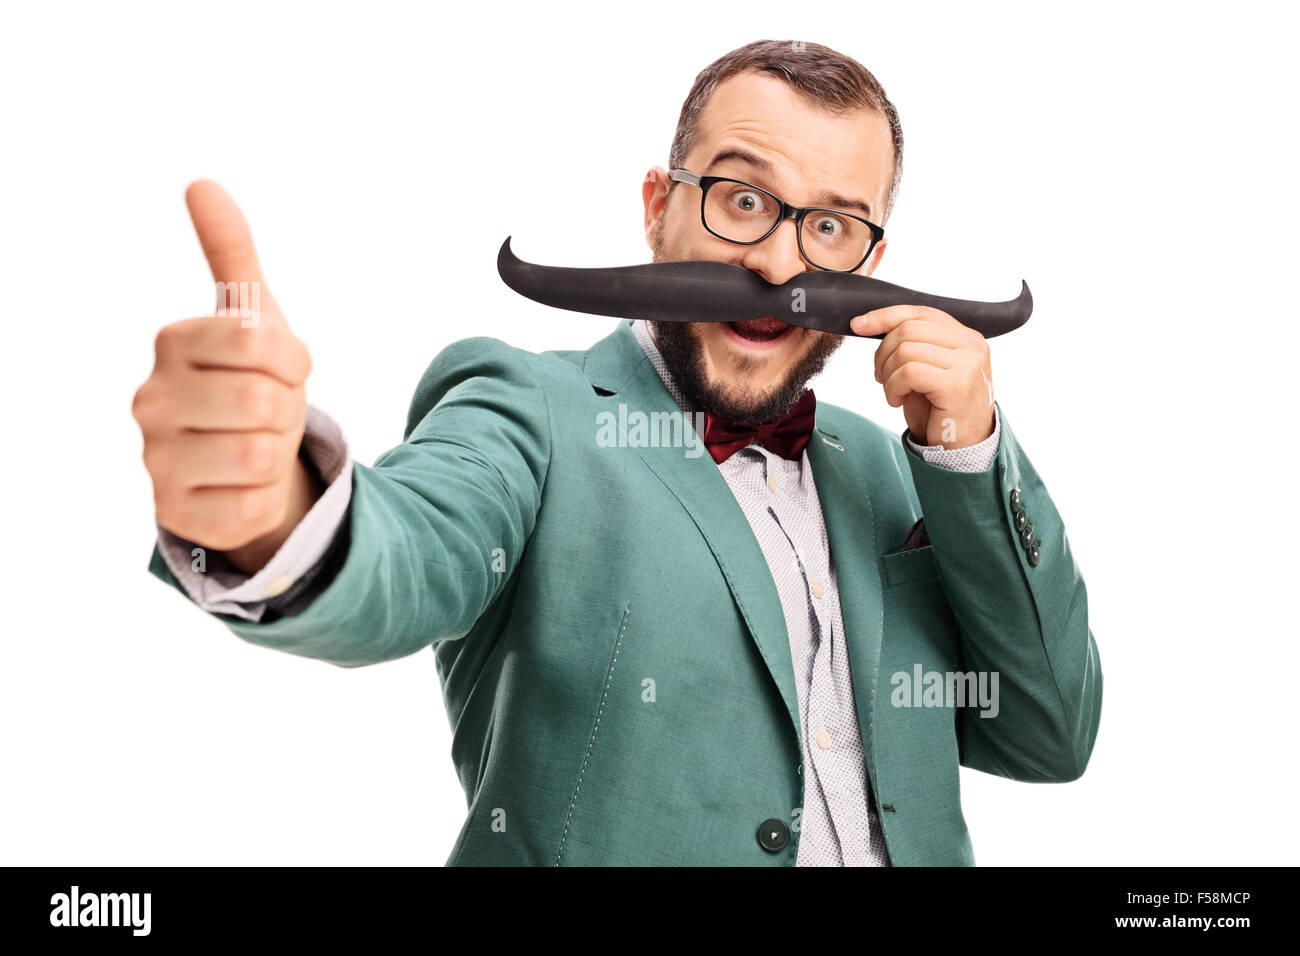 Excited young man holding fake moustache on his face and giving a thumb up isolated on white background - Stock Image